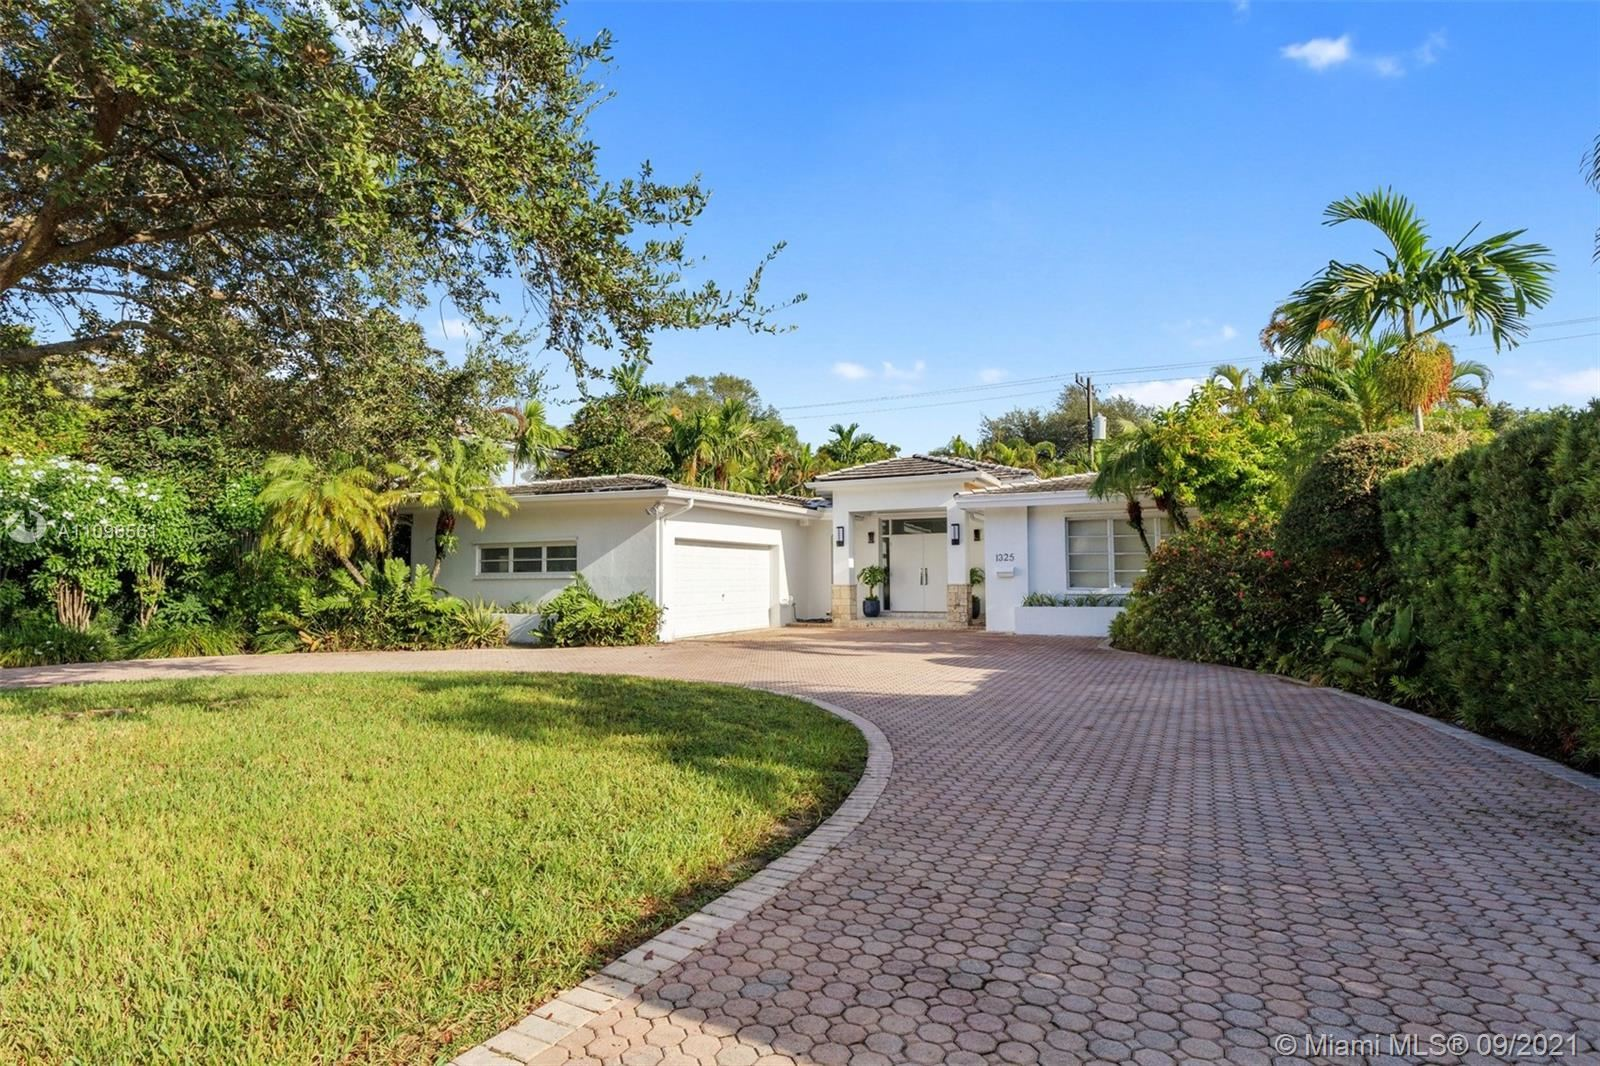 Photo of 1325 Blue Rd, Coral Gables, FL 33146 (MLS # A11096561)